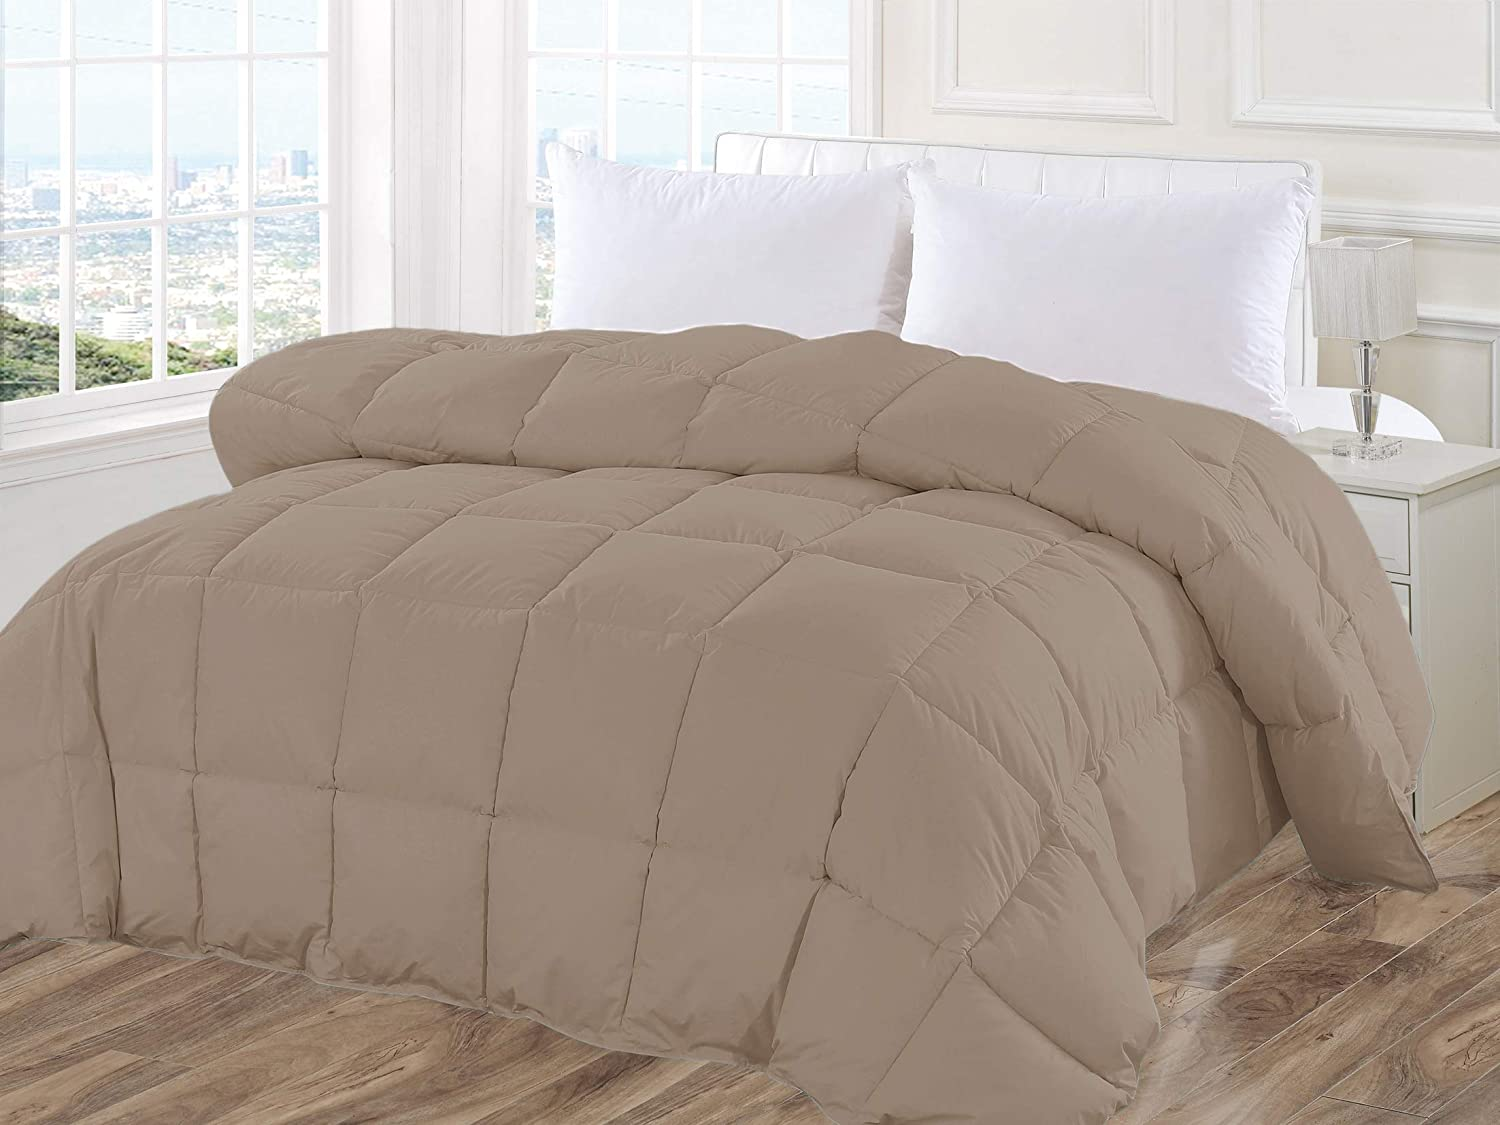 Melange Home 700-Fill Duck Down Cotton Shell Comforter Full/Queen, Simply Taupe